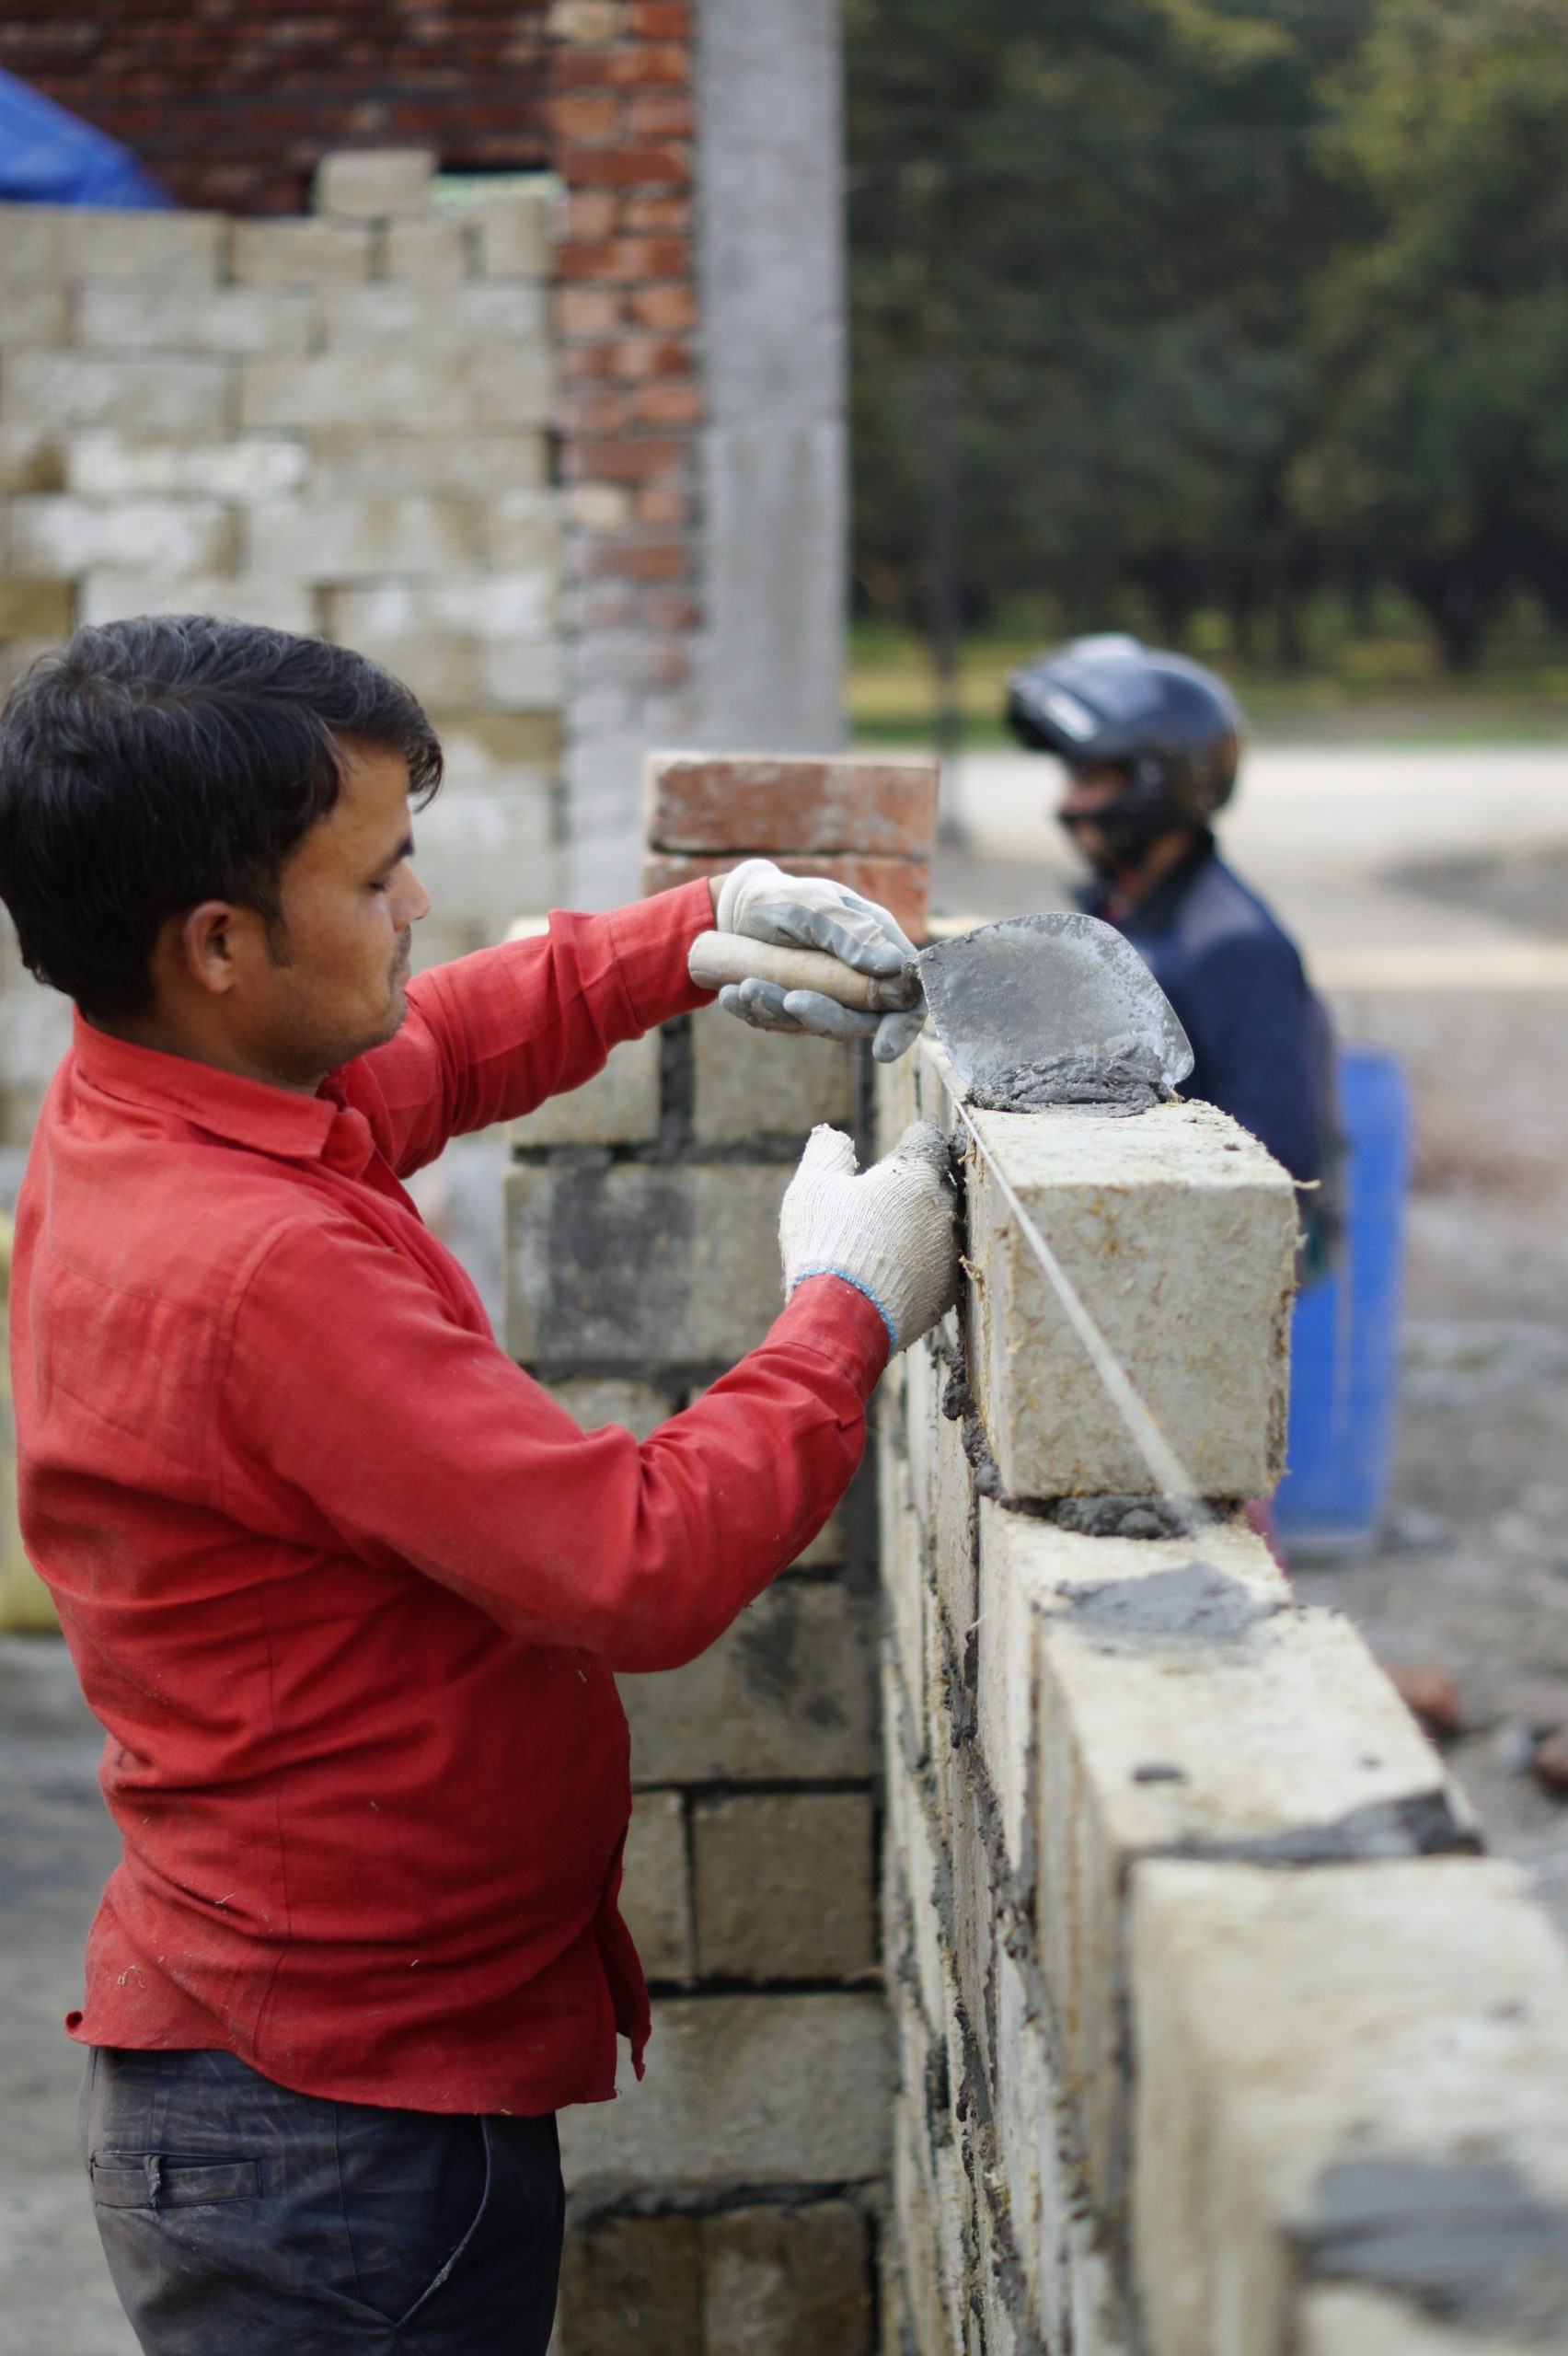 The brick reduces construction costs by 50% and is a 'classic solution' to the stubble burning issue that causes alarming pollution levels in Delhi.